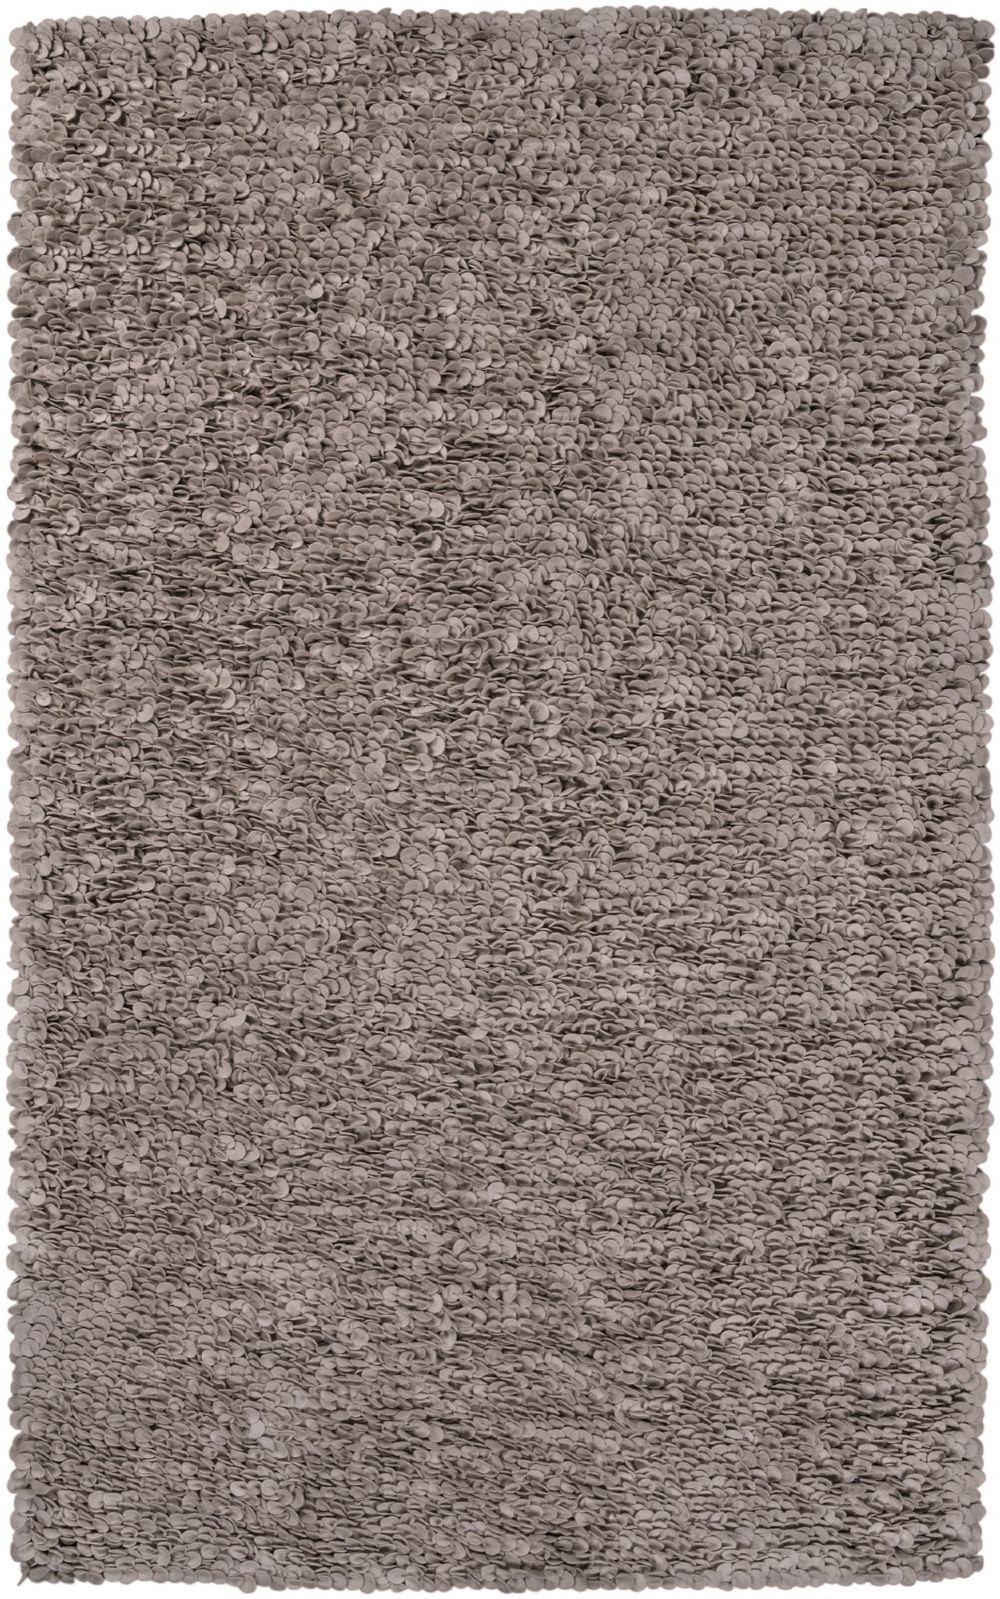 surya disc shag area rug collection